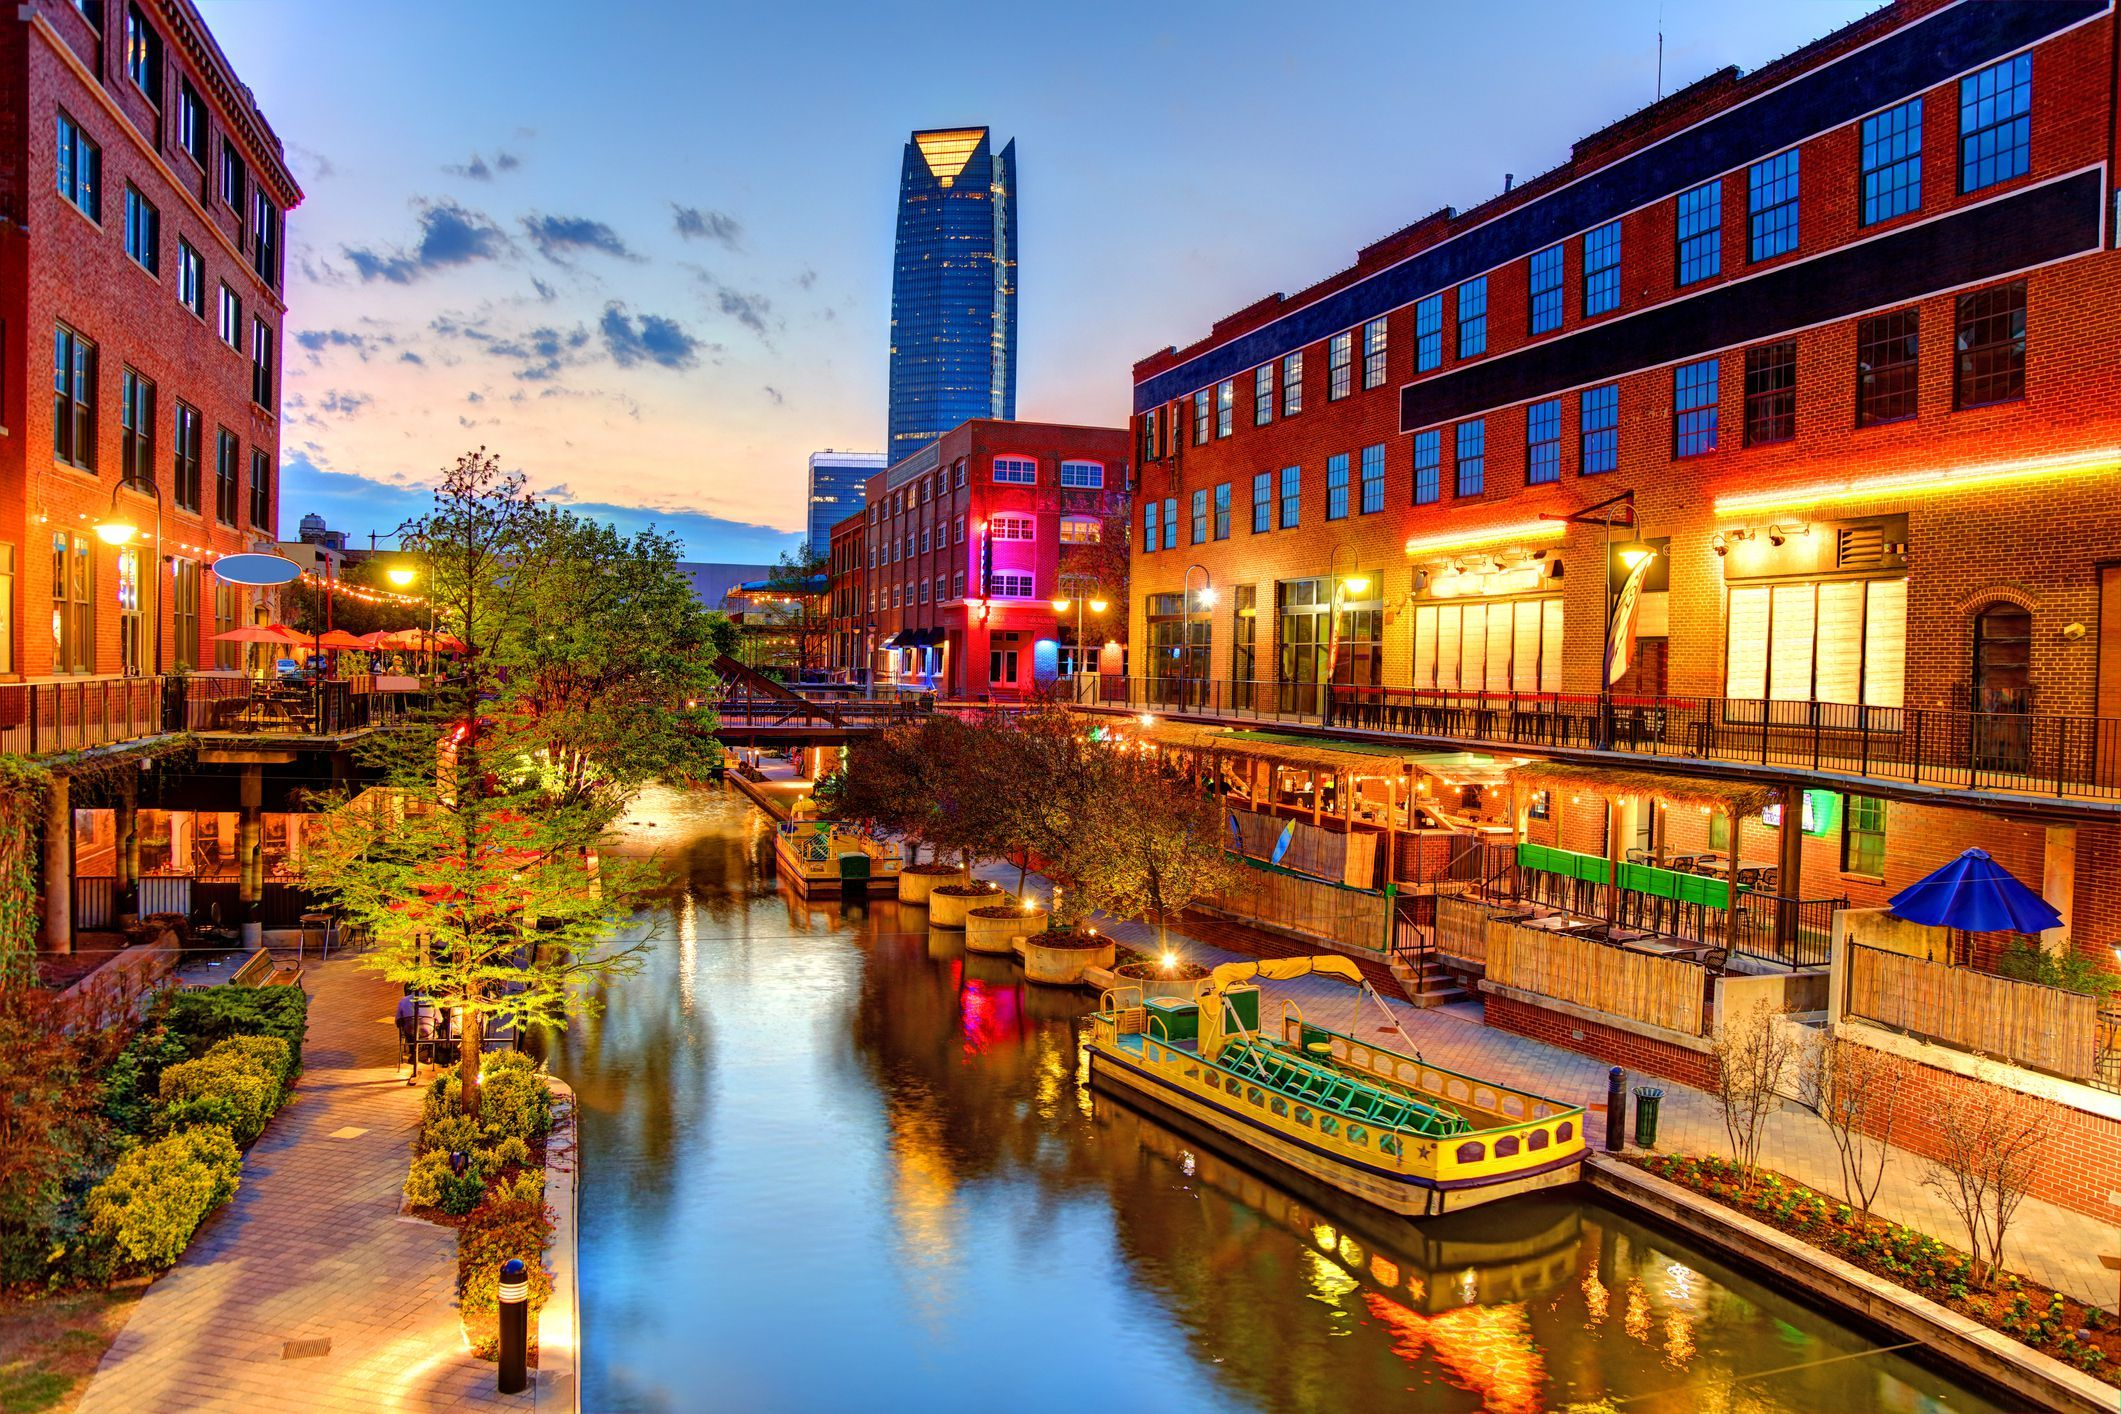 11 Best Things To Do In Bricktown Oklahoma City Oklahoma City Things To Do Oklahoma Vacation Oklahoma Travel